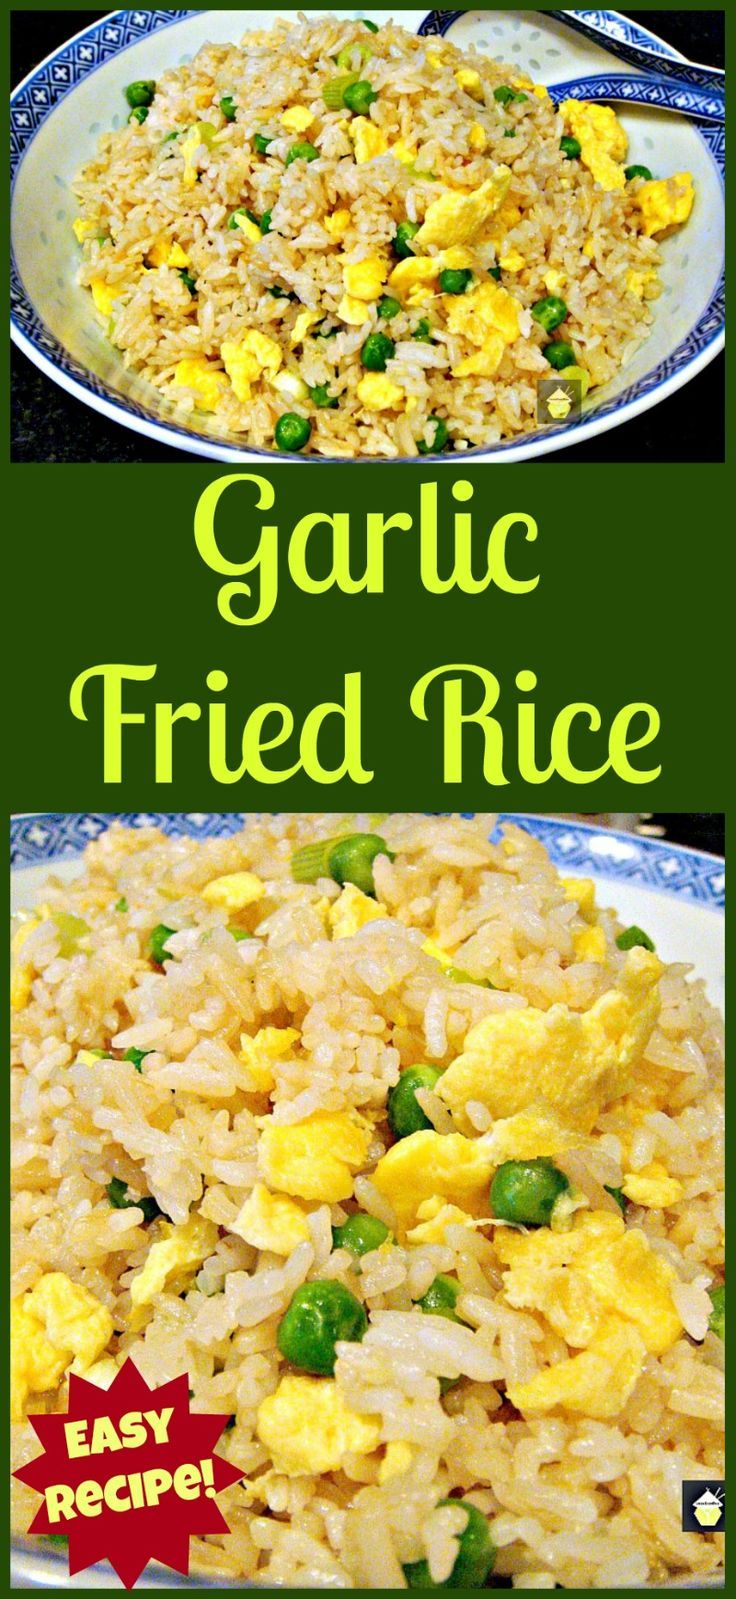 Make some delicious garlic fried rice i make this often its quick dishes forumfinder